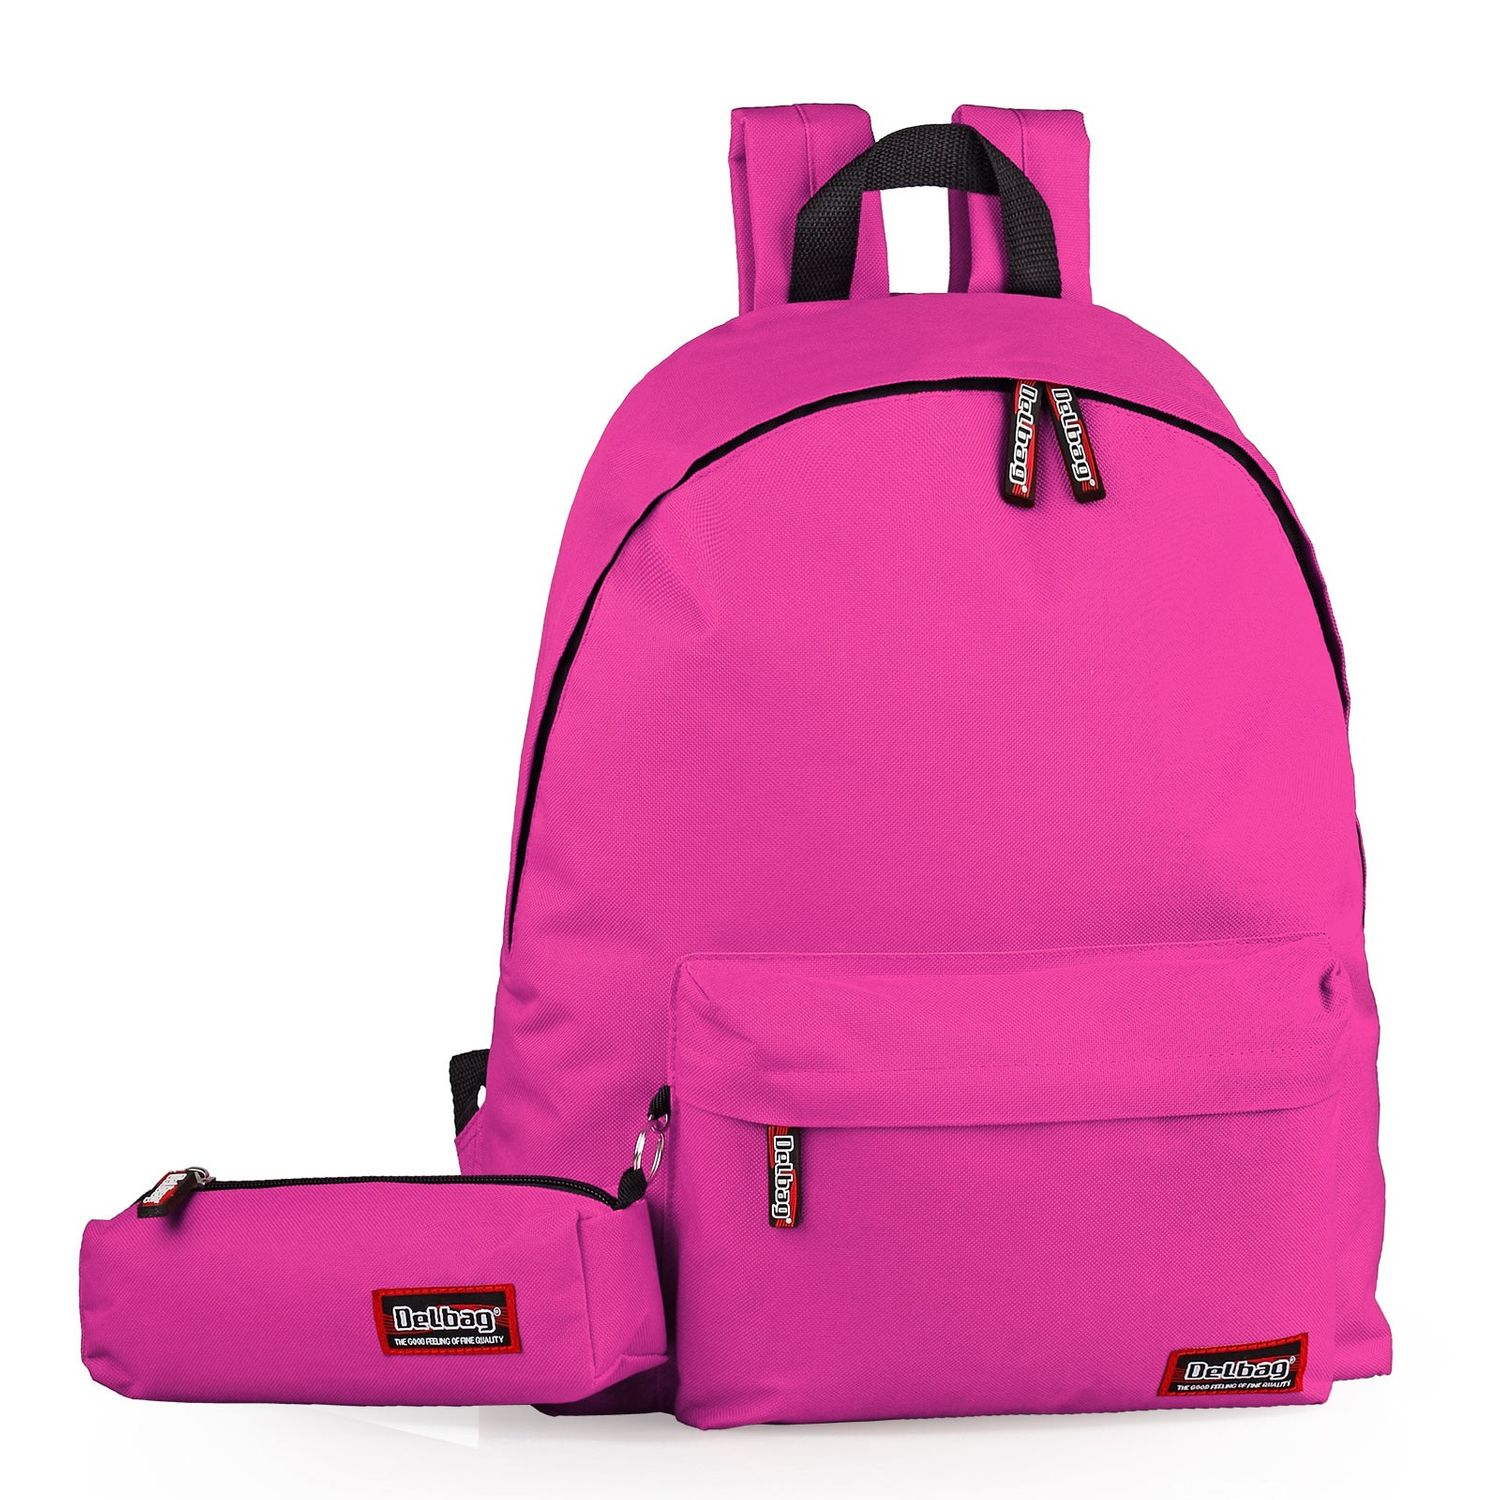 Delbag Large Backpack With Pencil Case Set – image 6